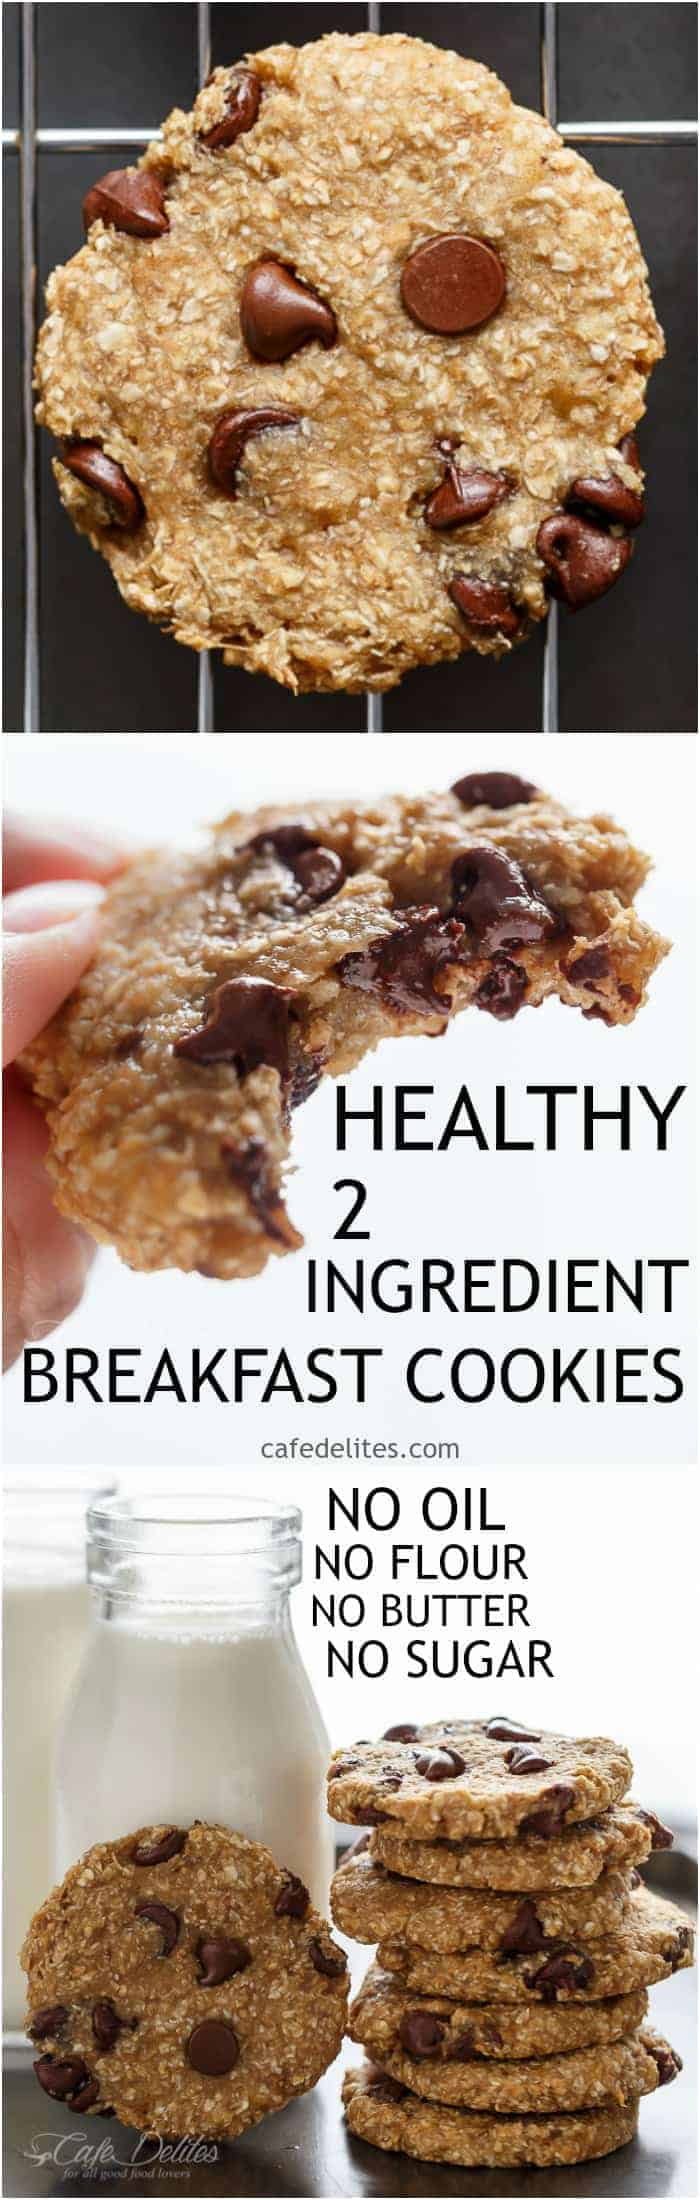 No flour. No oil. No refined sugars, Non fat. Weight Watchers friendly. Low calorie! These Healthy 2-Ingredient Breakfast Cookies are super easy to make!   http://cafedelites.com